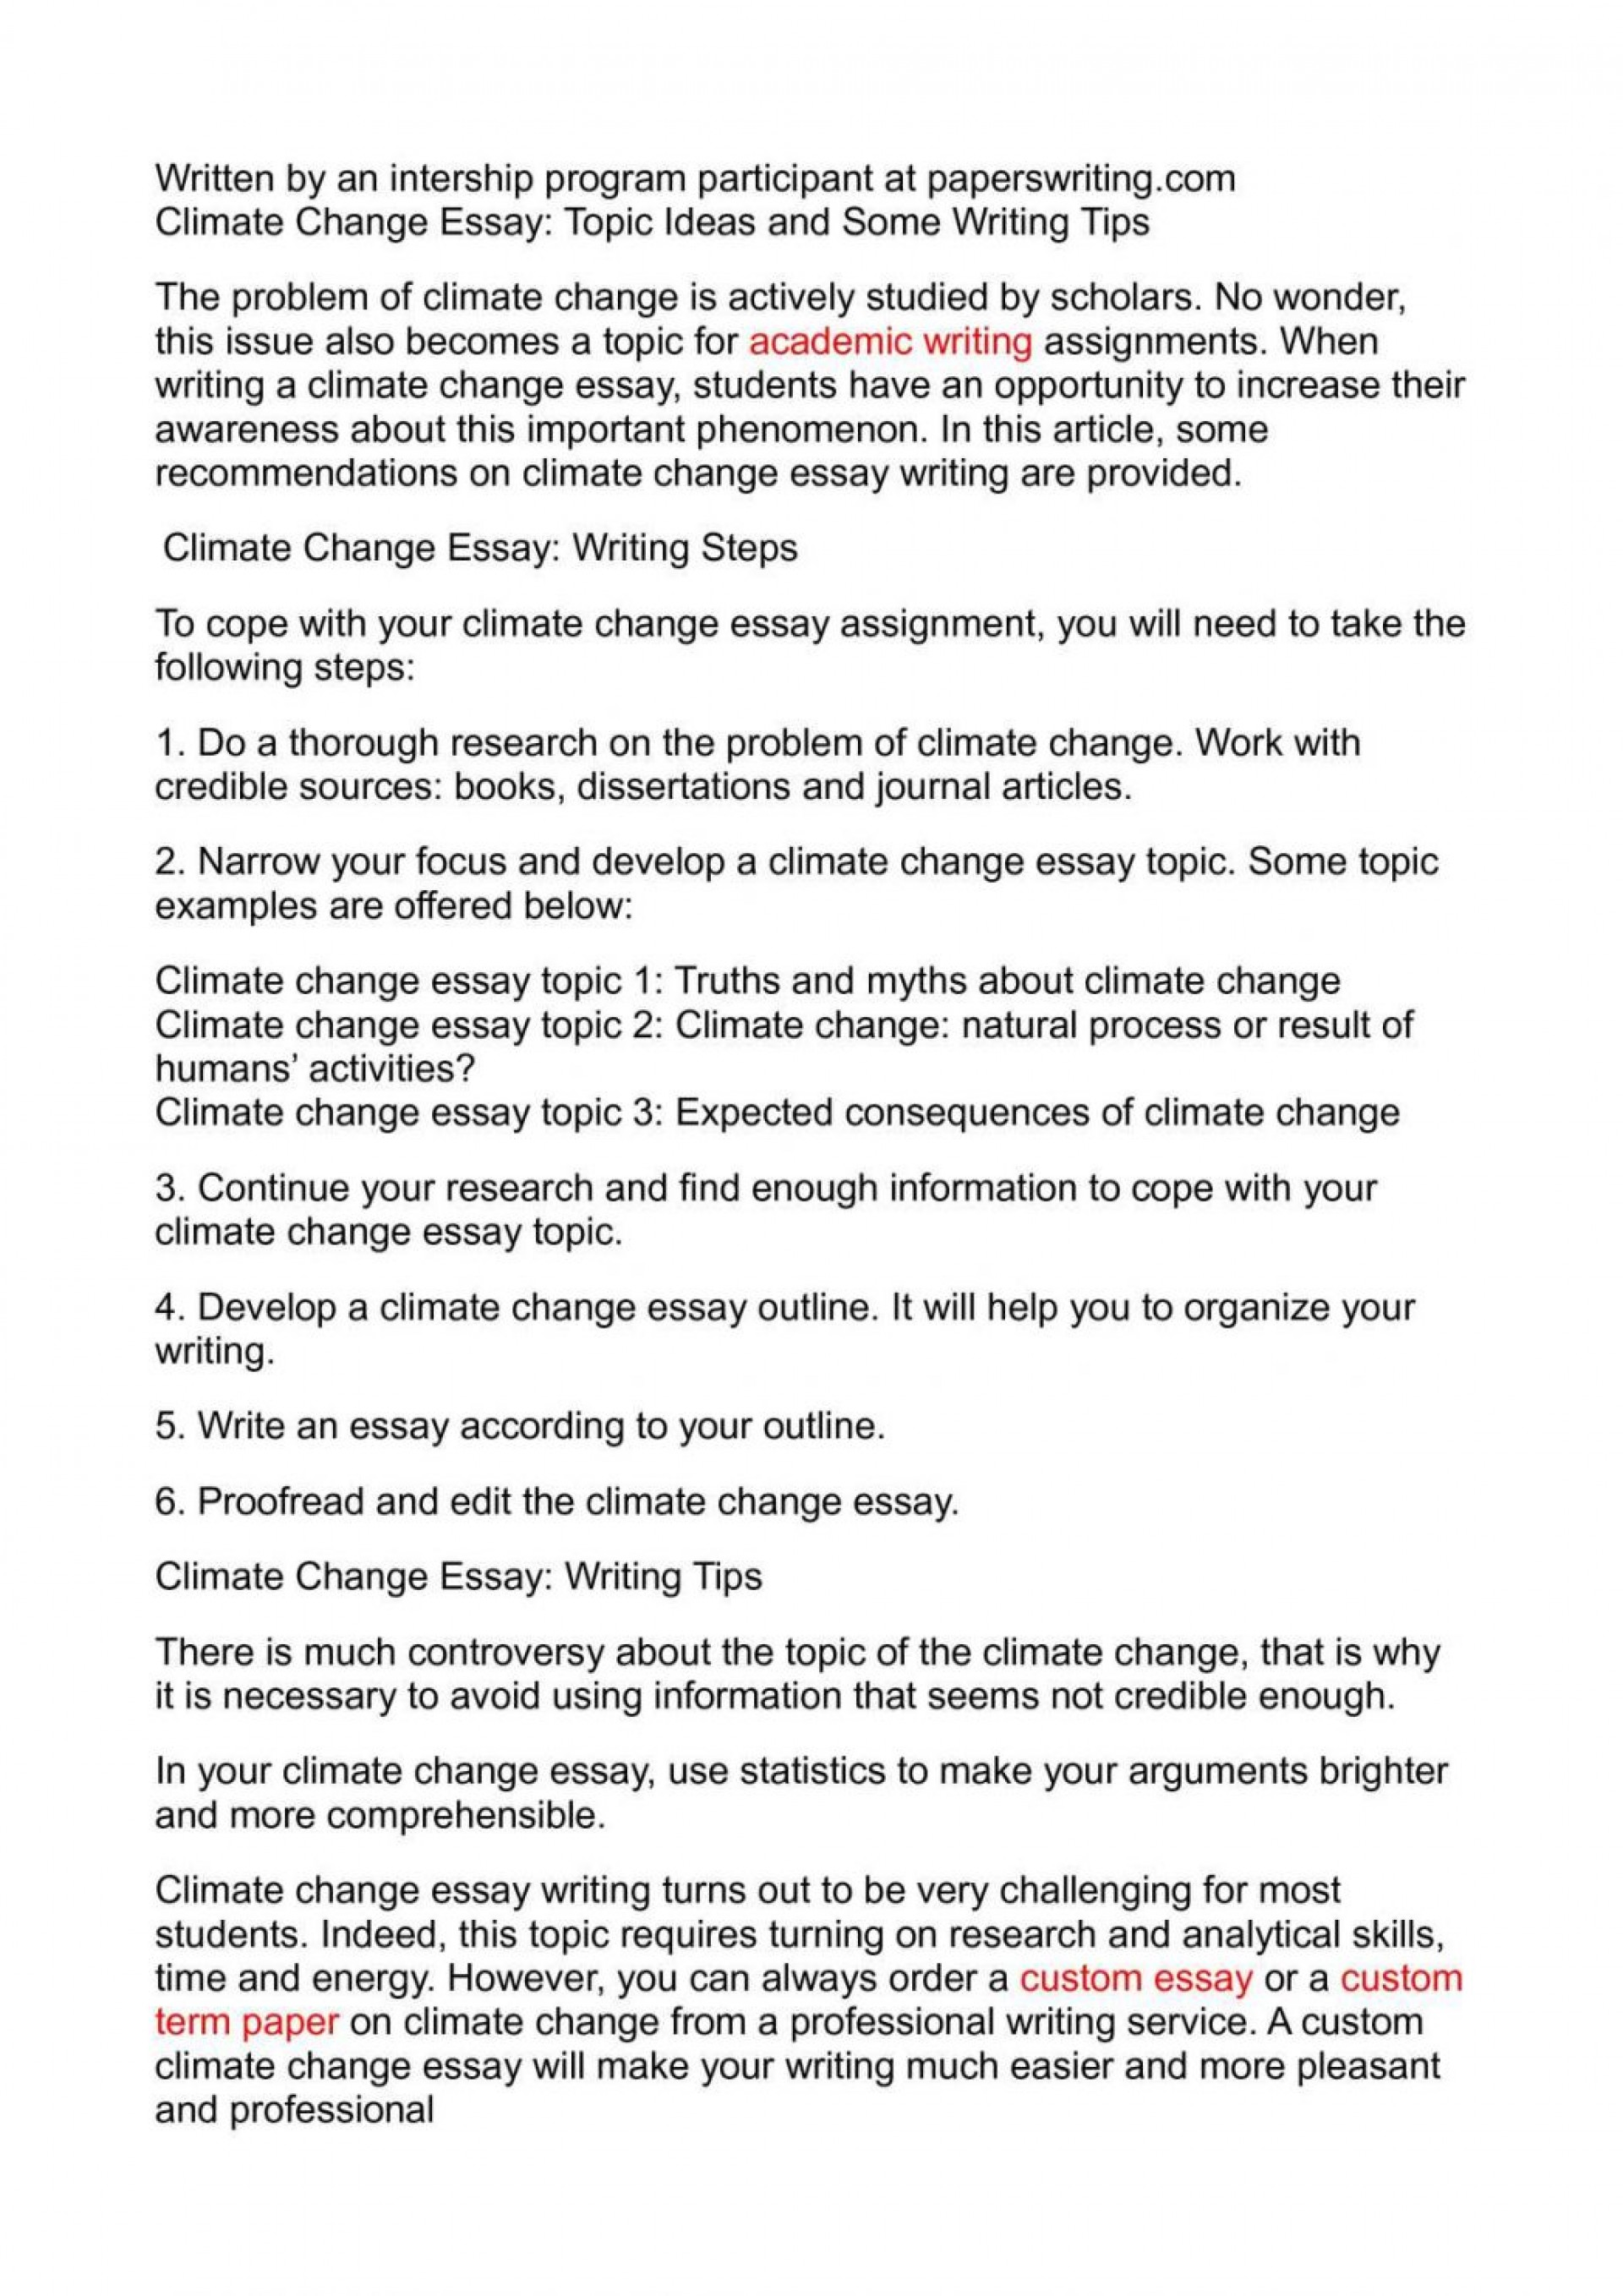 004 Global Climate Change Essay Warming And How To Write An Abo Argumentative On Persuasive Study Mode About Good Paper 1048x1483 Awesome In English 150 Words Thesis Statement Ideas 1920